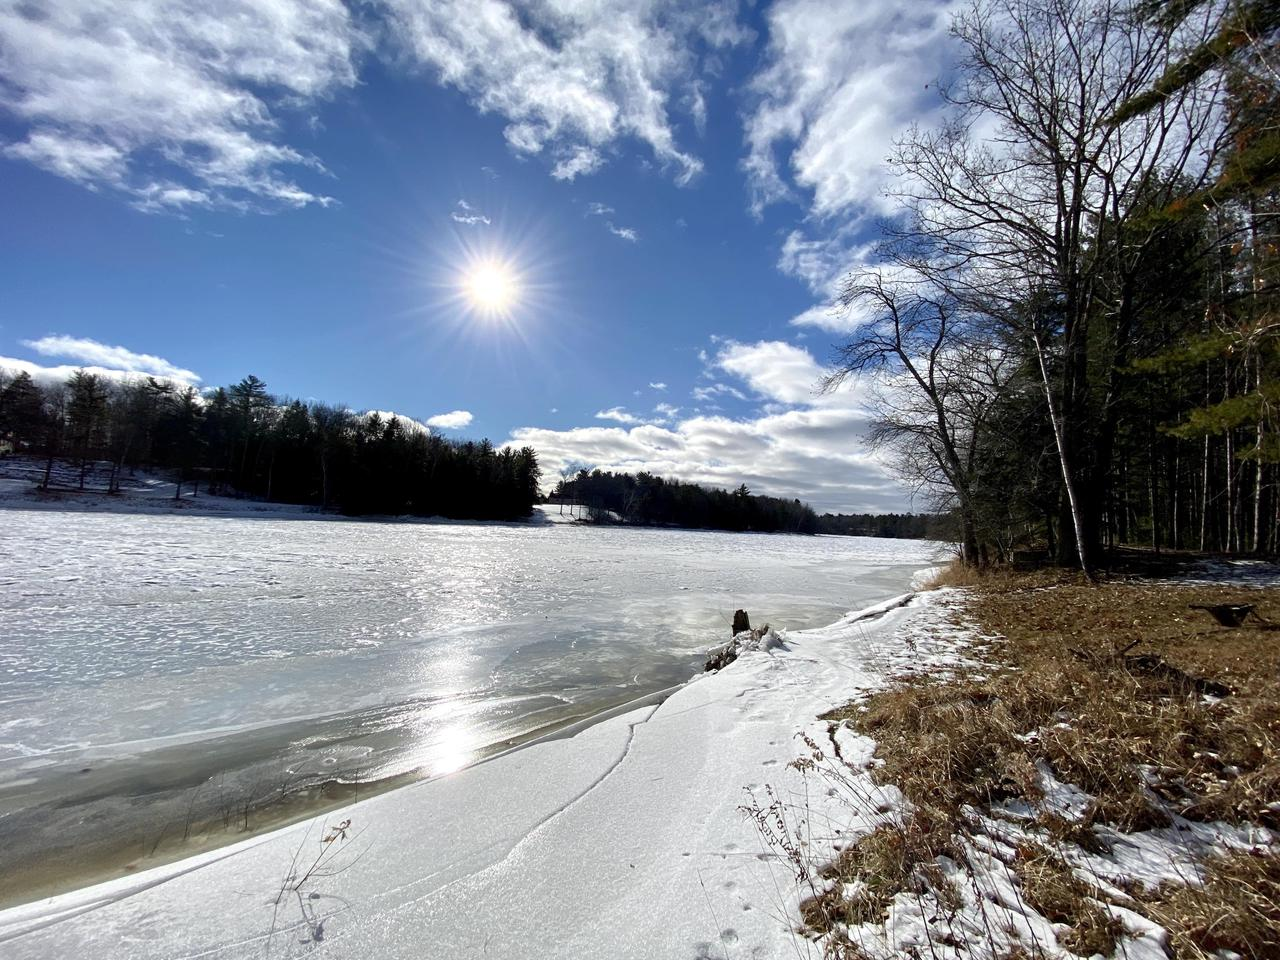 View Vacant Land For Sale at Lt 1 Menominee River Dr, Porterfield, WI